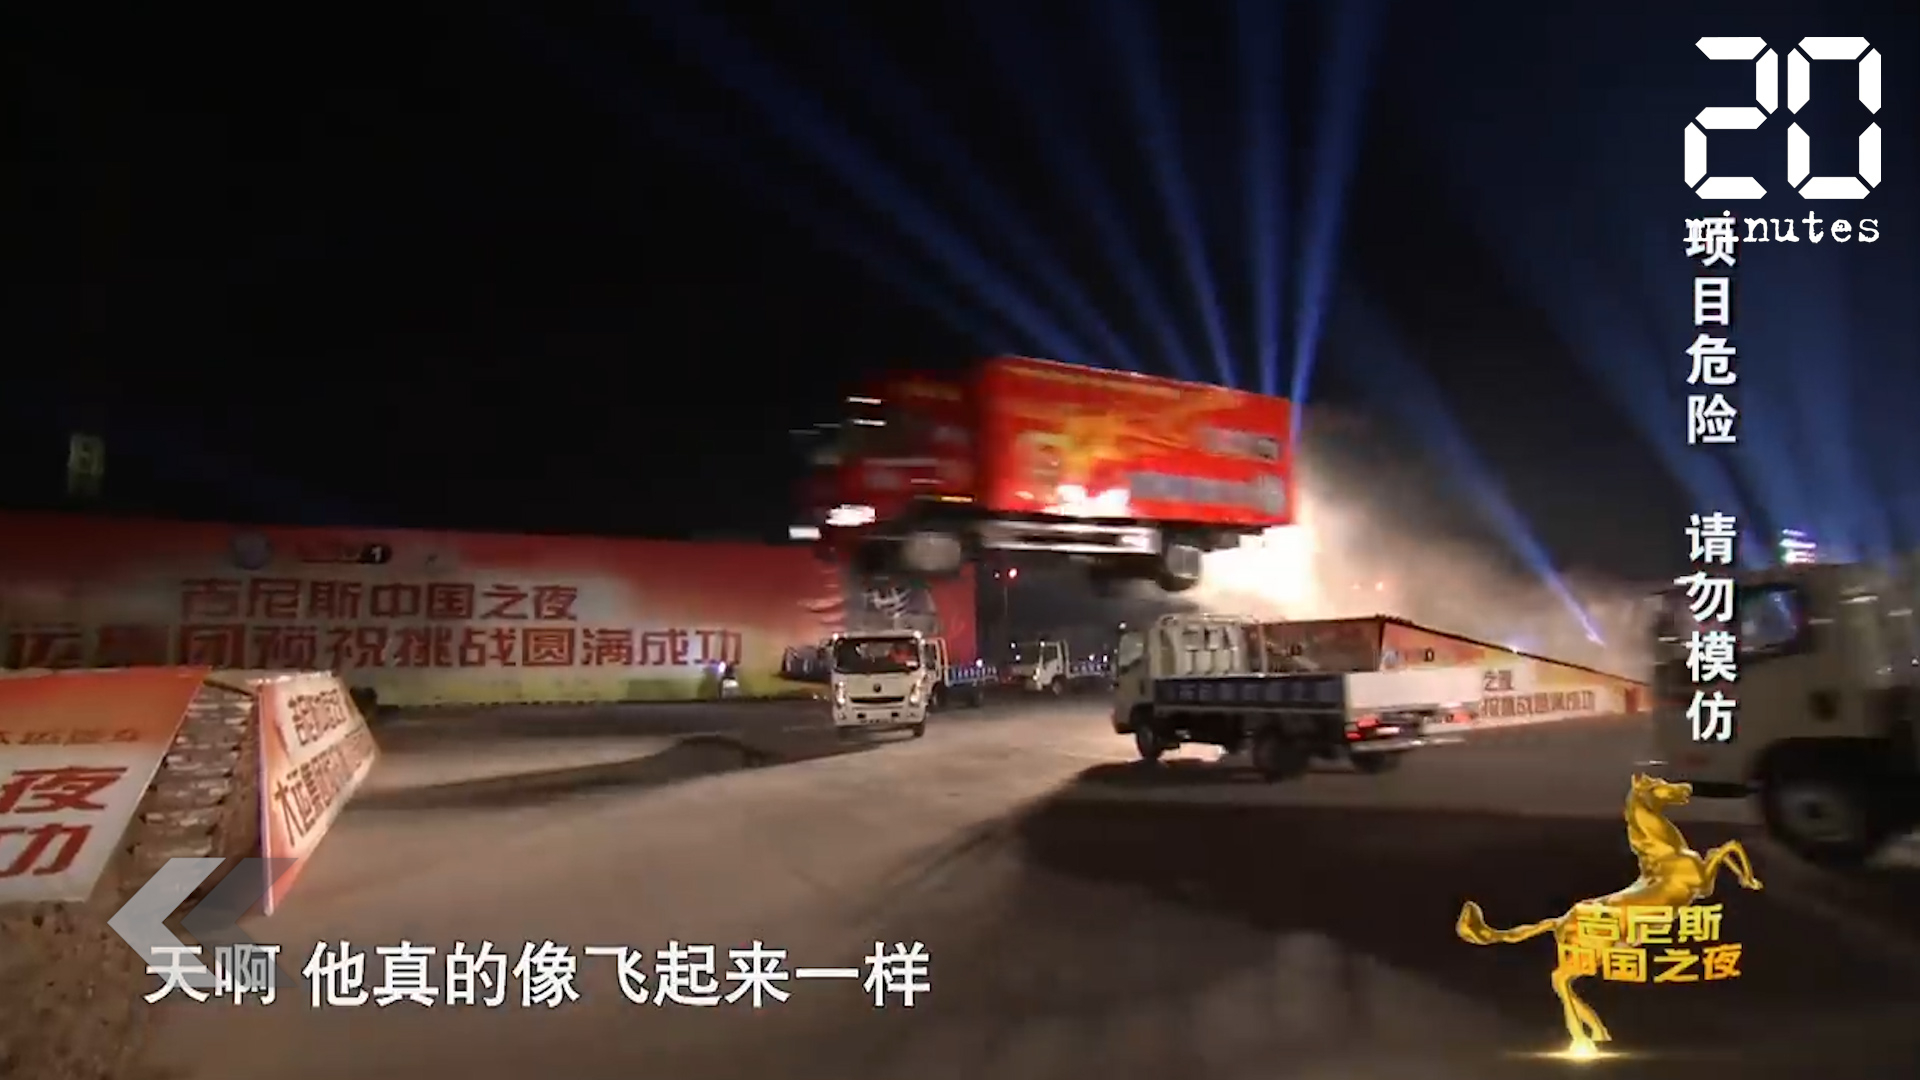 VIDEO. Chine: Il réalise le saut en camion le plus long du monde